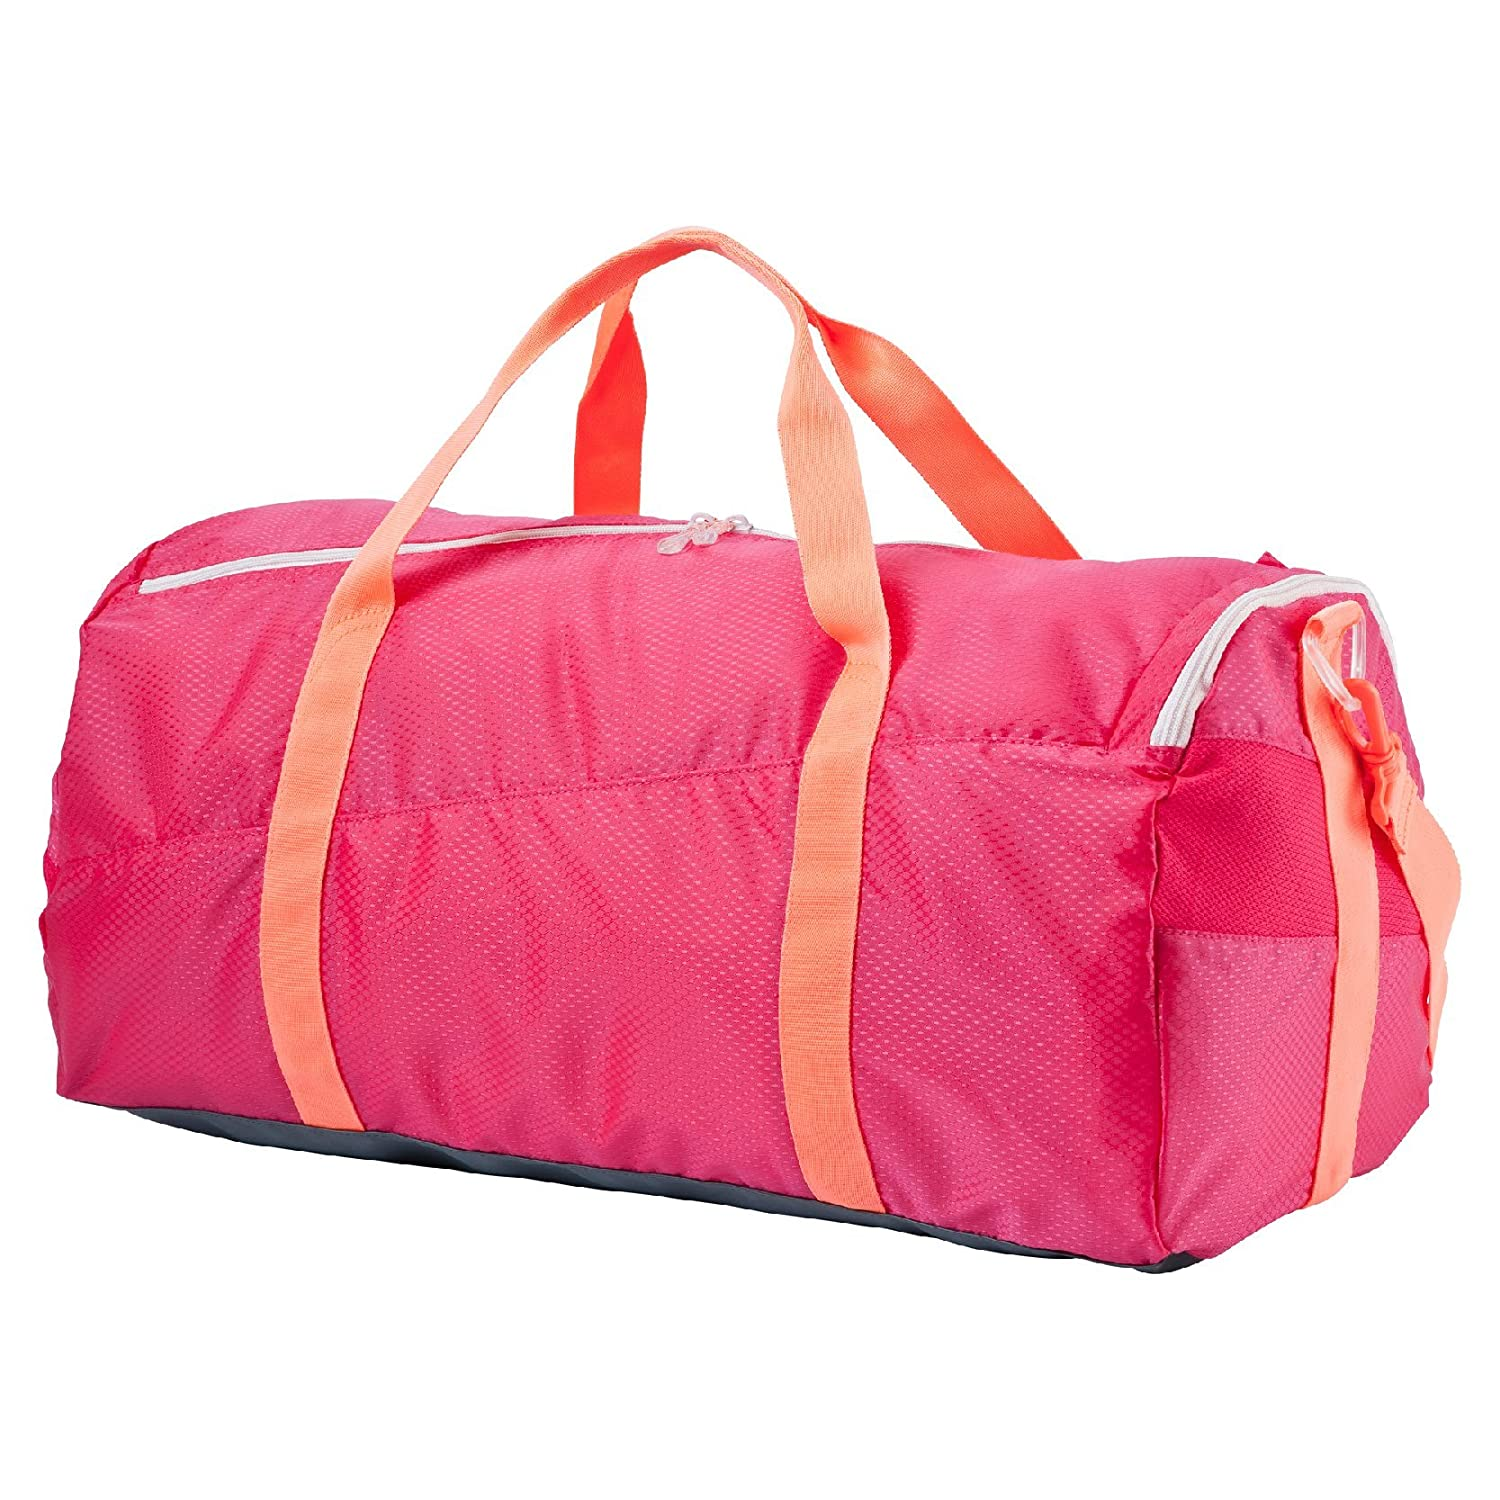 219a4845c8 Puma Polyester 40 Ltrs Rosered